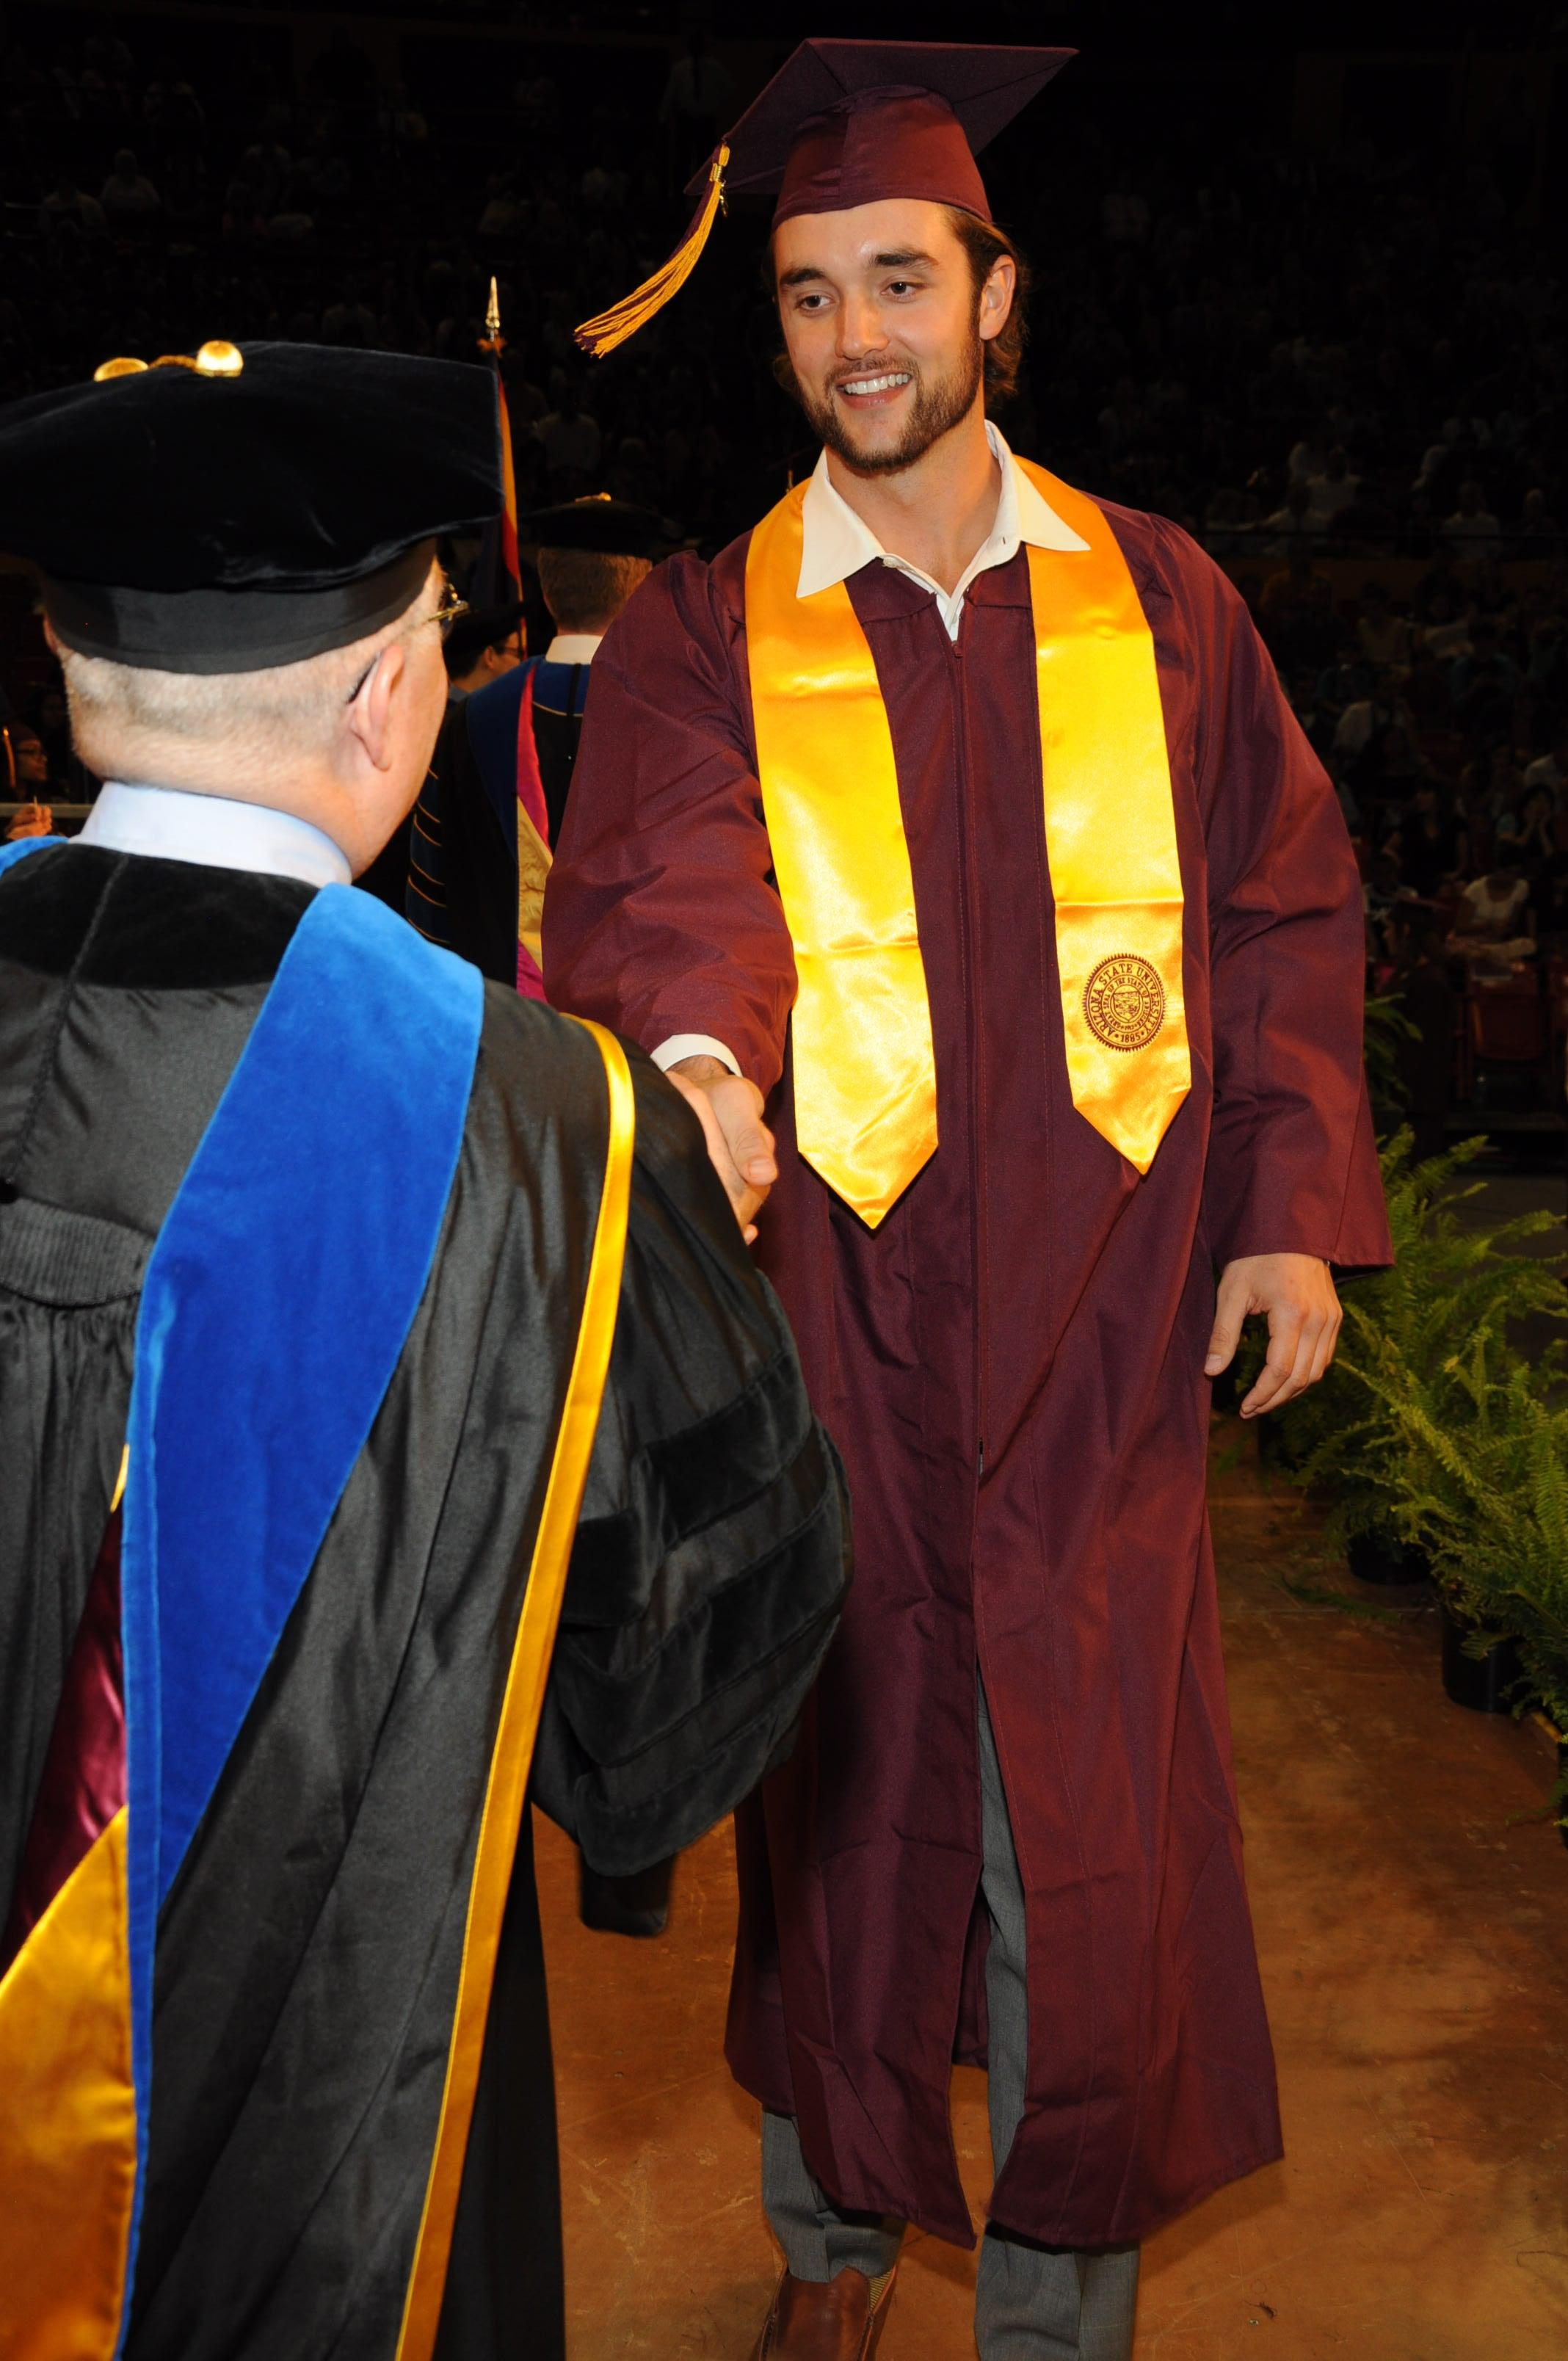 ASU College of Integrative Sciences and Arts alum and NFL QB Brock Osweiler accepts his diploma in Dec 2014 from Dean Duane Roen